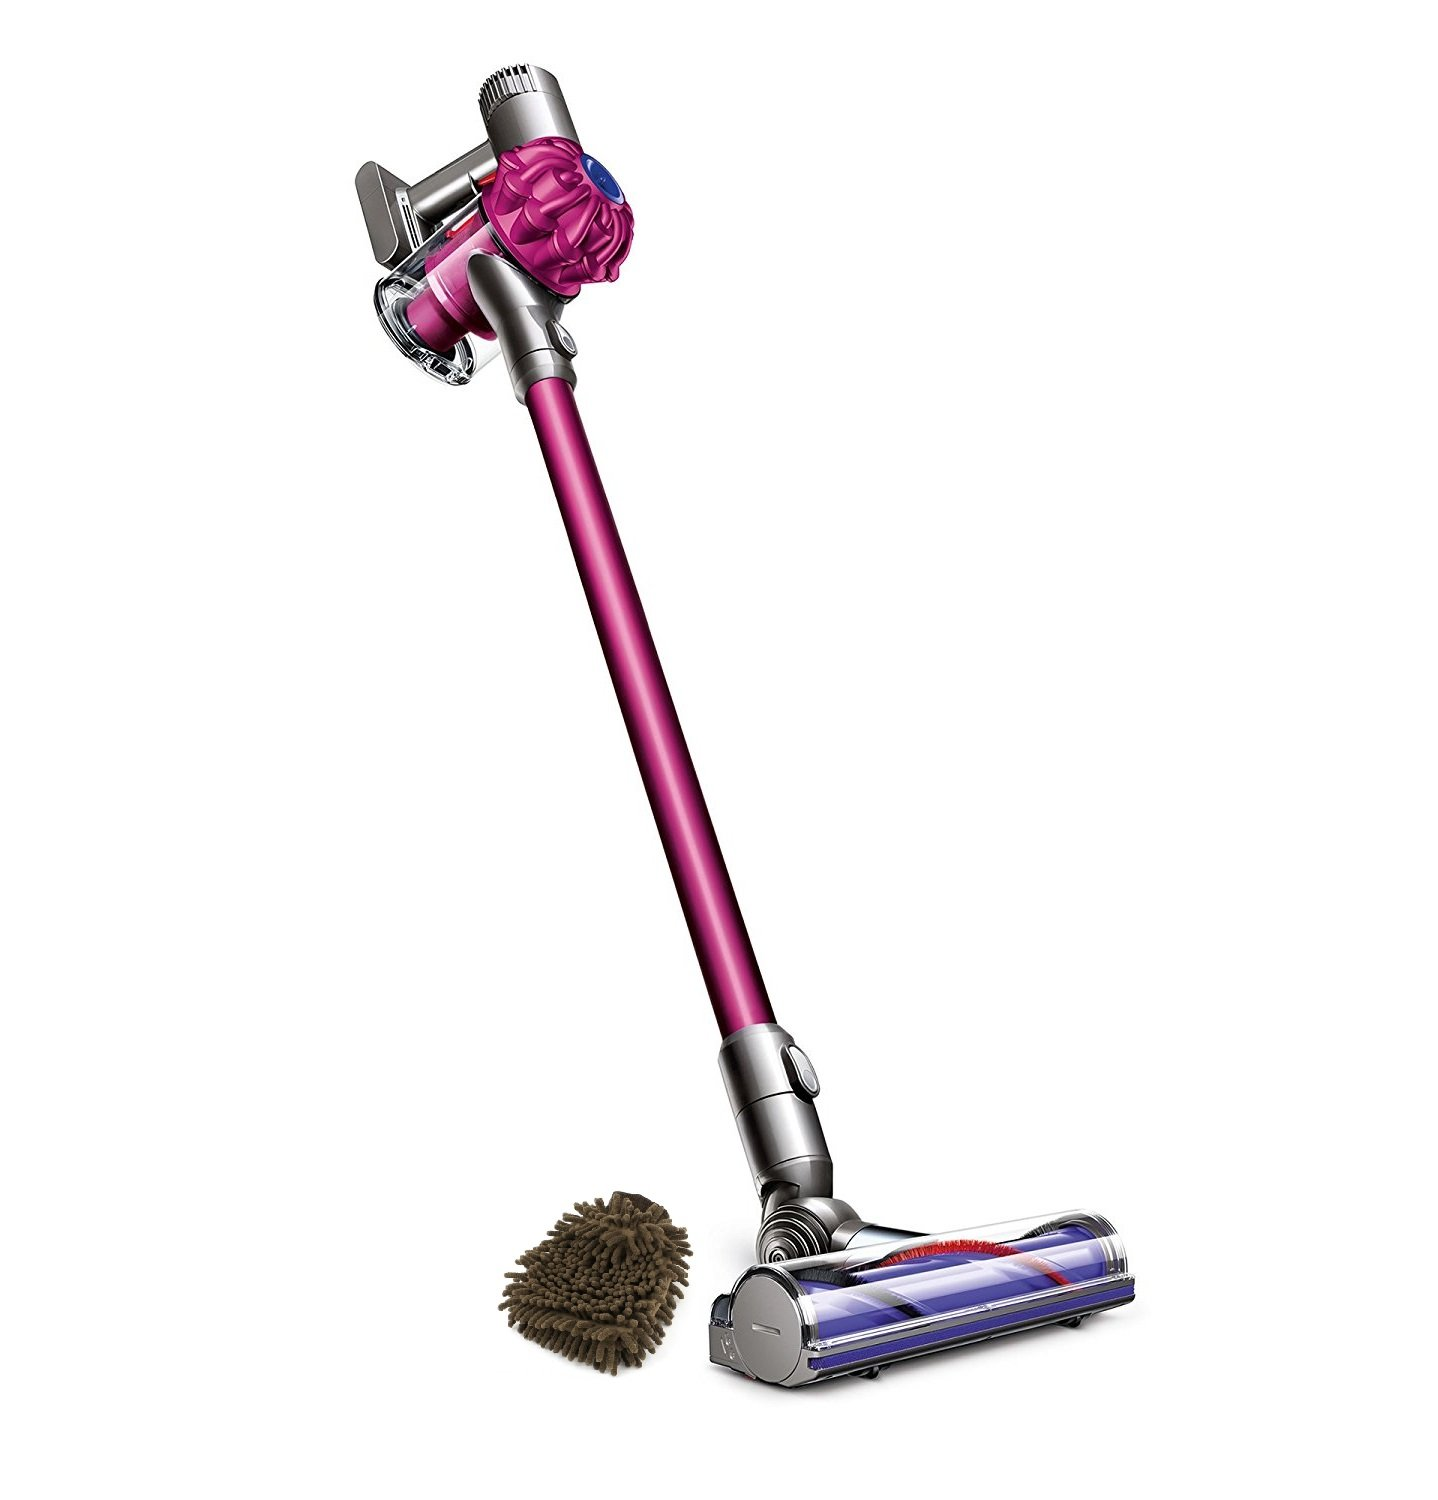 Dyson Cyber Monday 2019 Sale at Nordstrom Rack